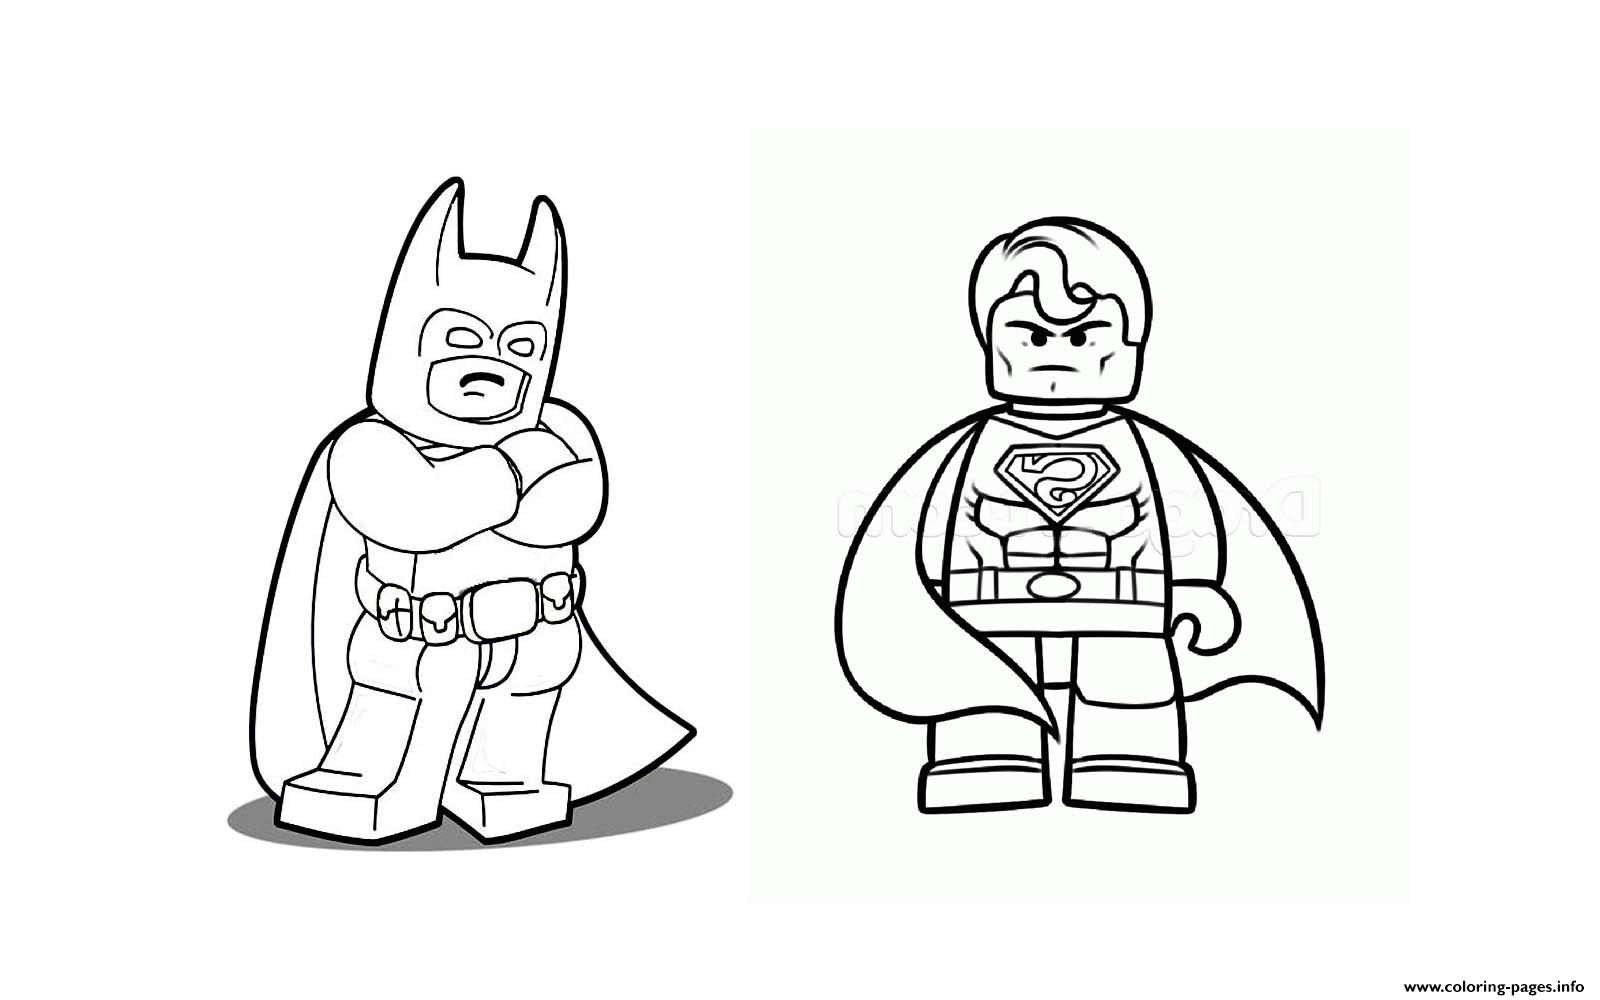 Batman And Superman Lego Coloring Pages In 2020 Lego Coloring Pages Superman Coloring Pages Superhero Coloring Pages